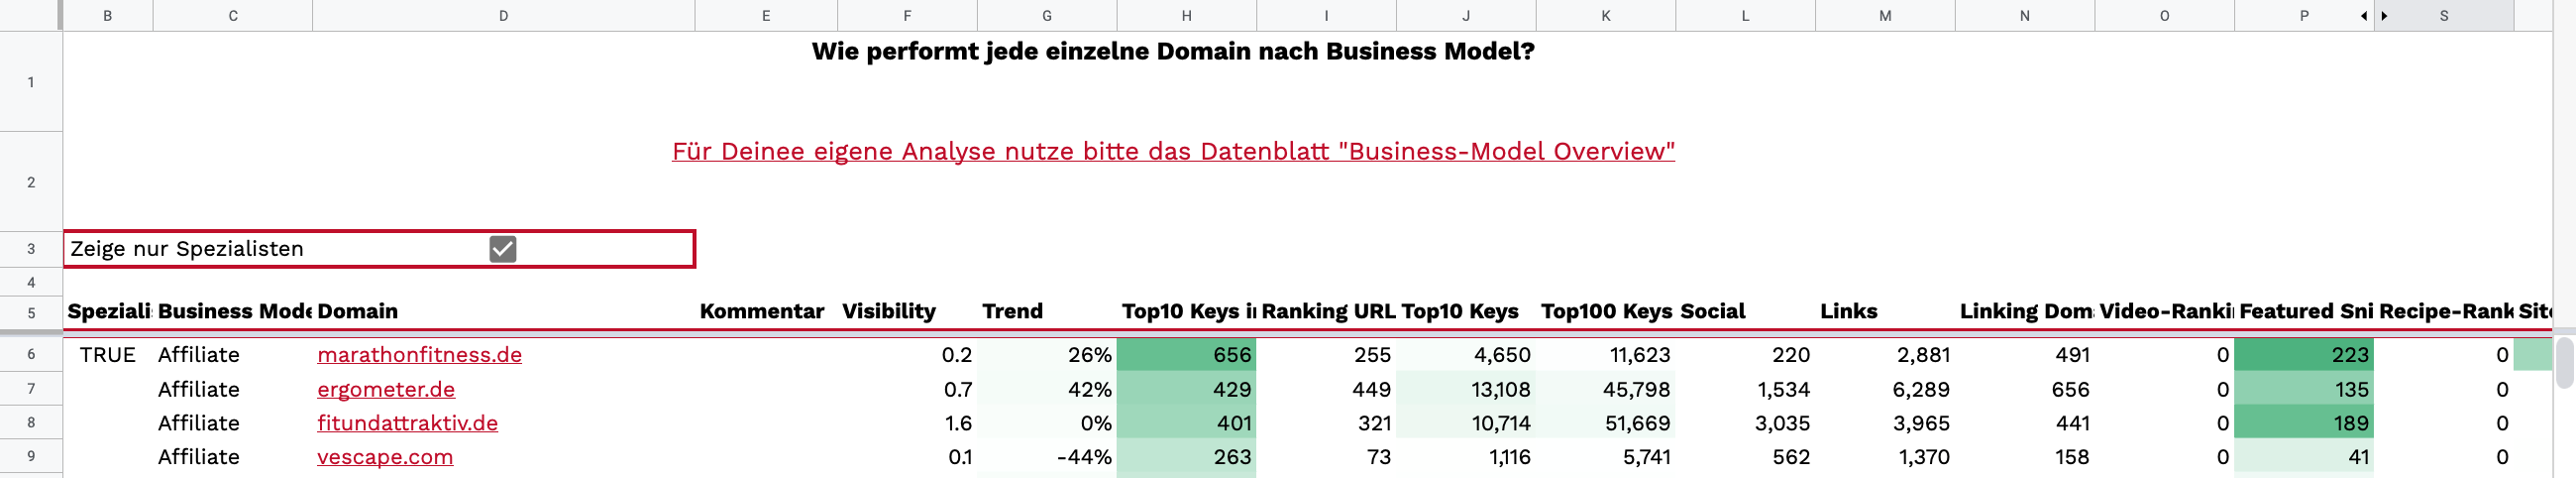 "Screenshot Tabelle ""Explore bei Business-Model"""